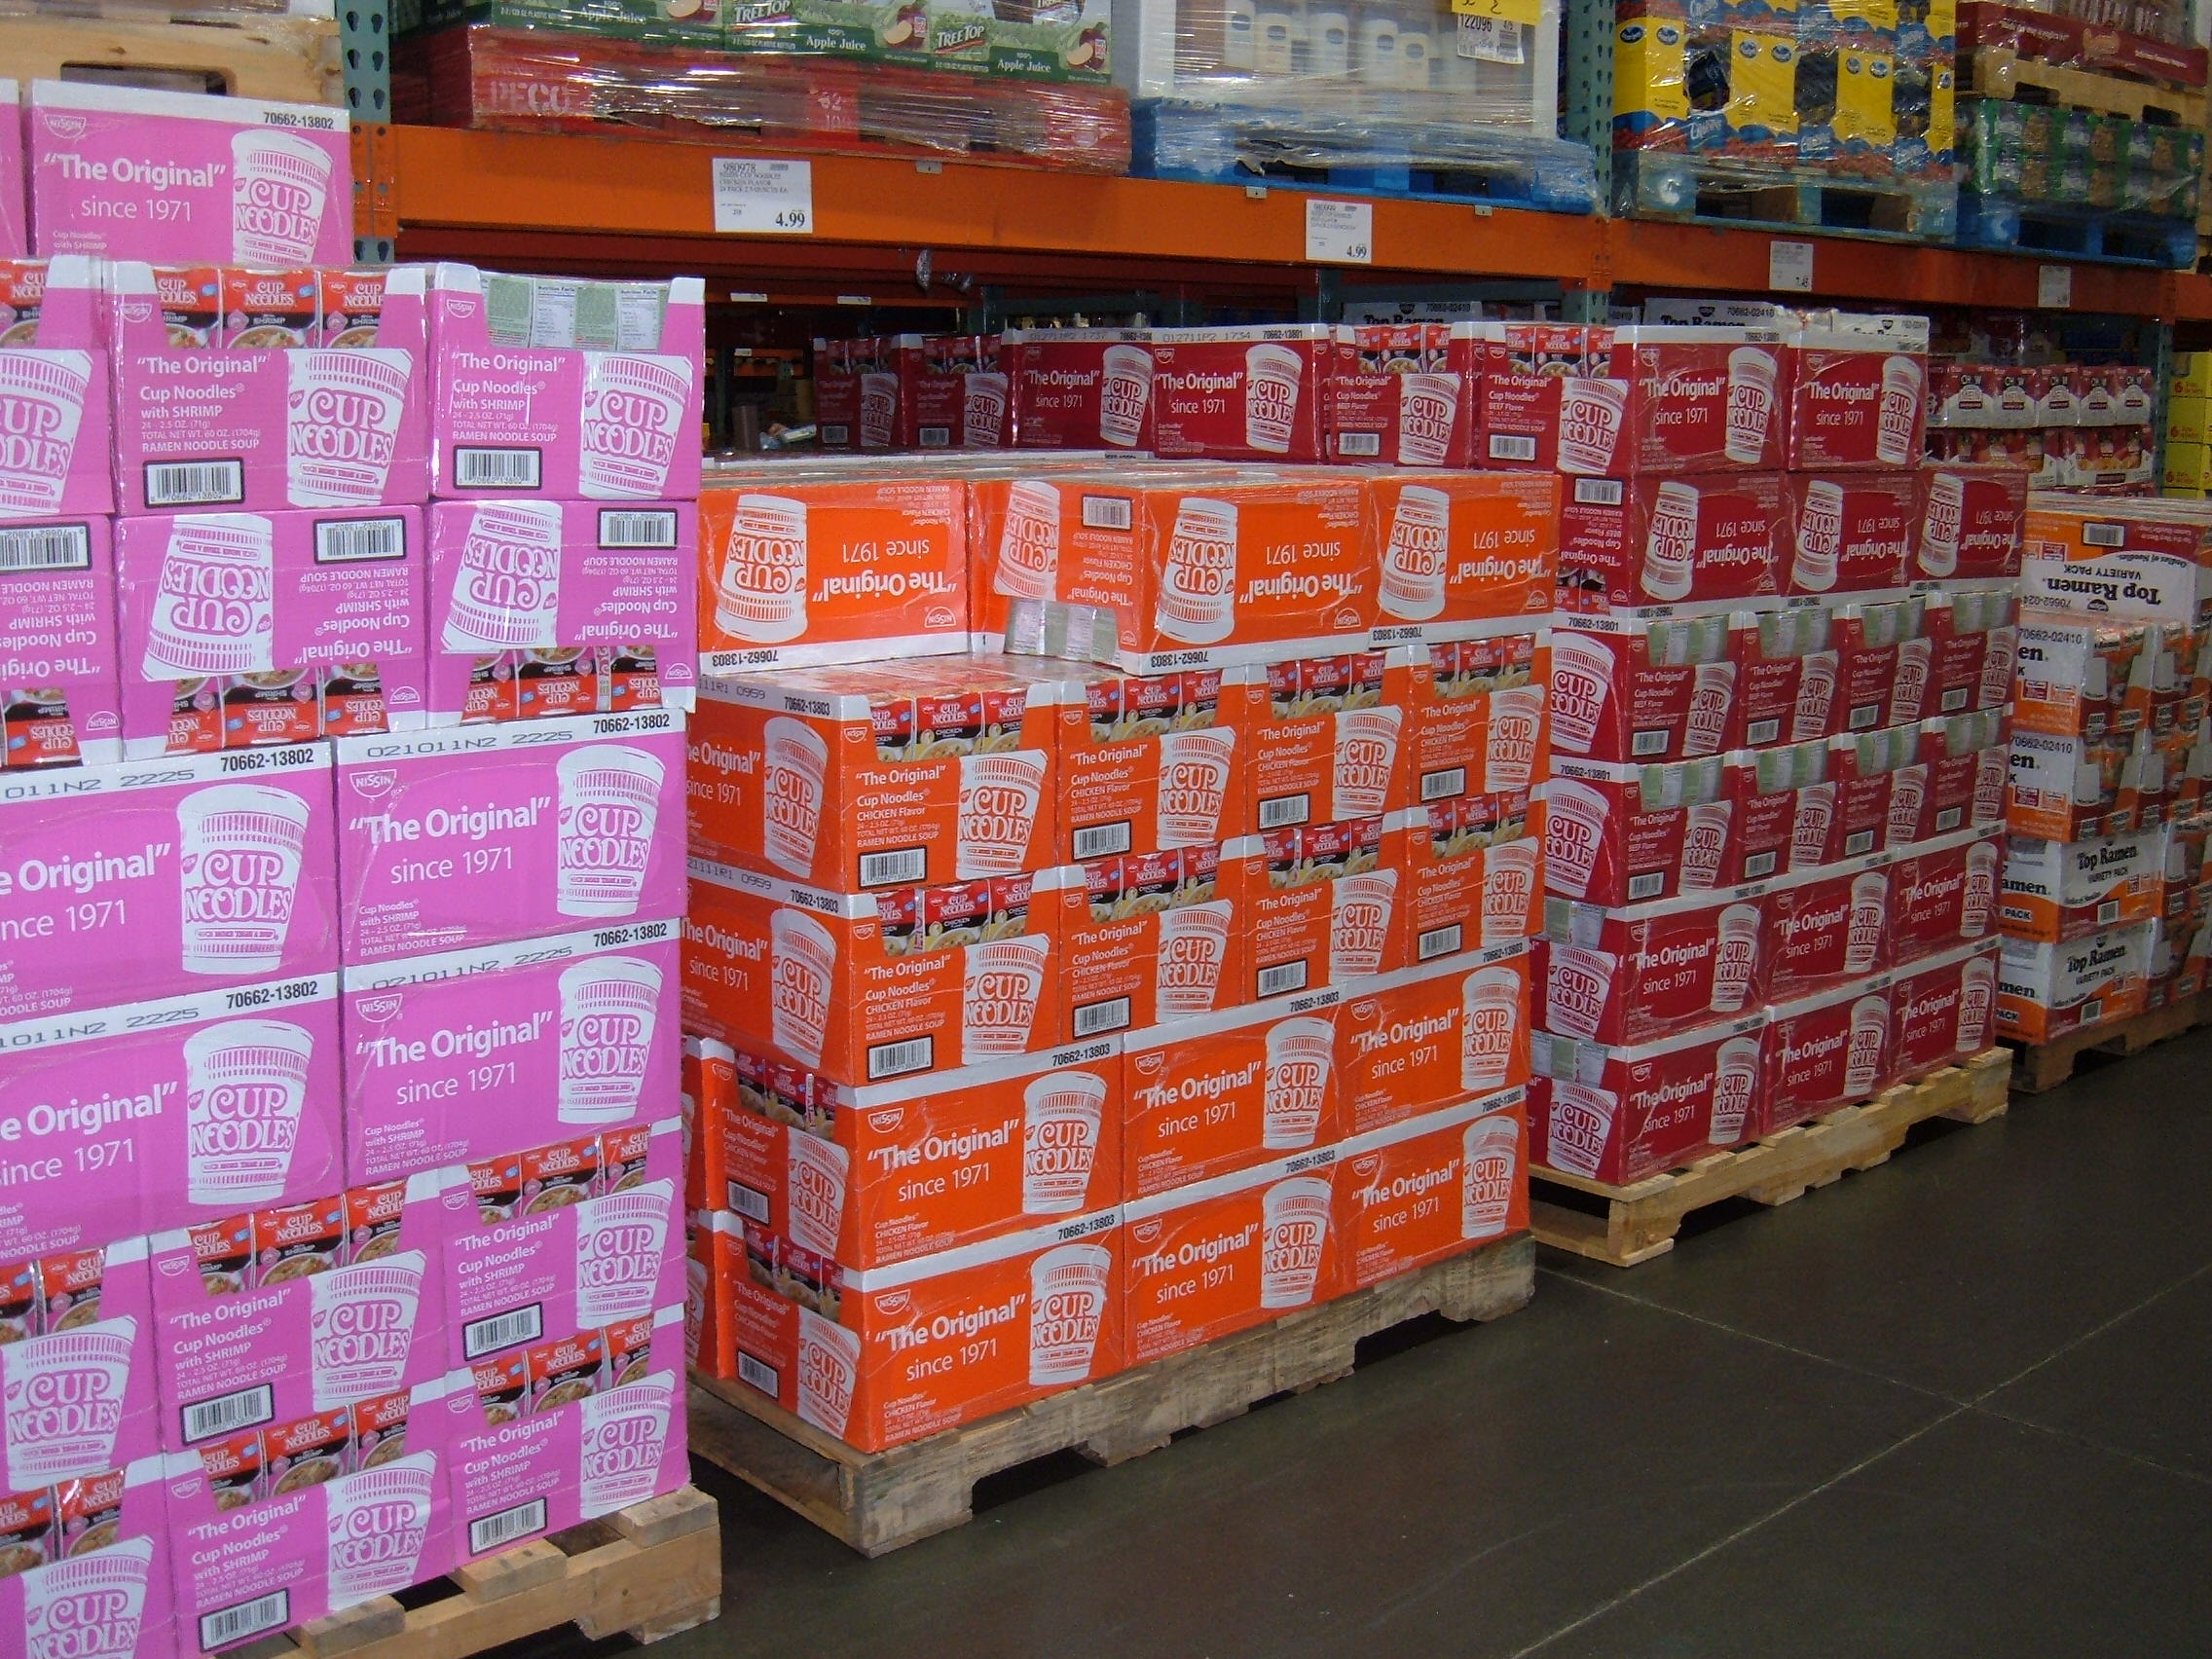 ... Cup Noodles on pallets at Costco, SSF ECR.JPG - Wikimedia Commons